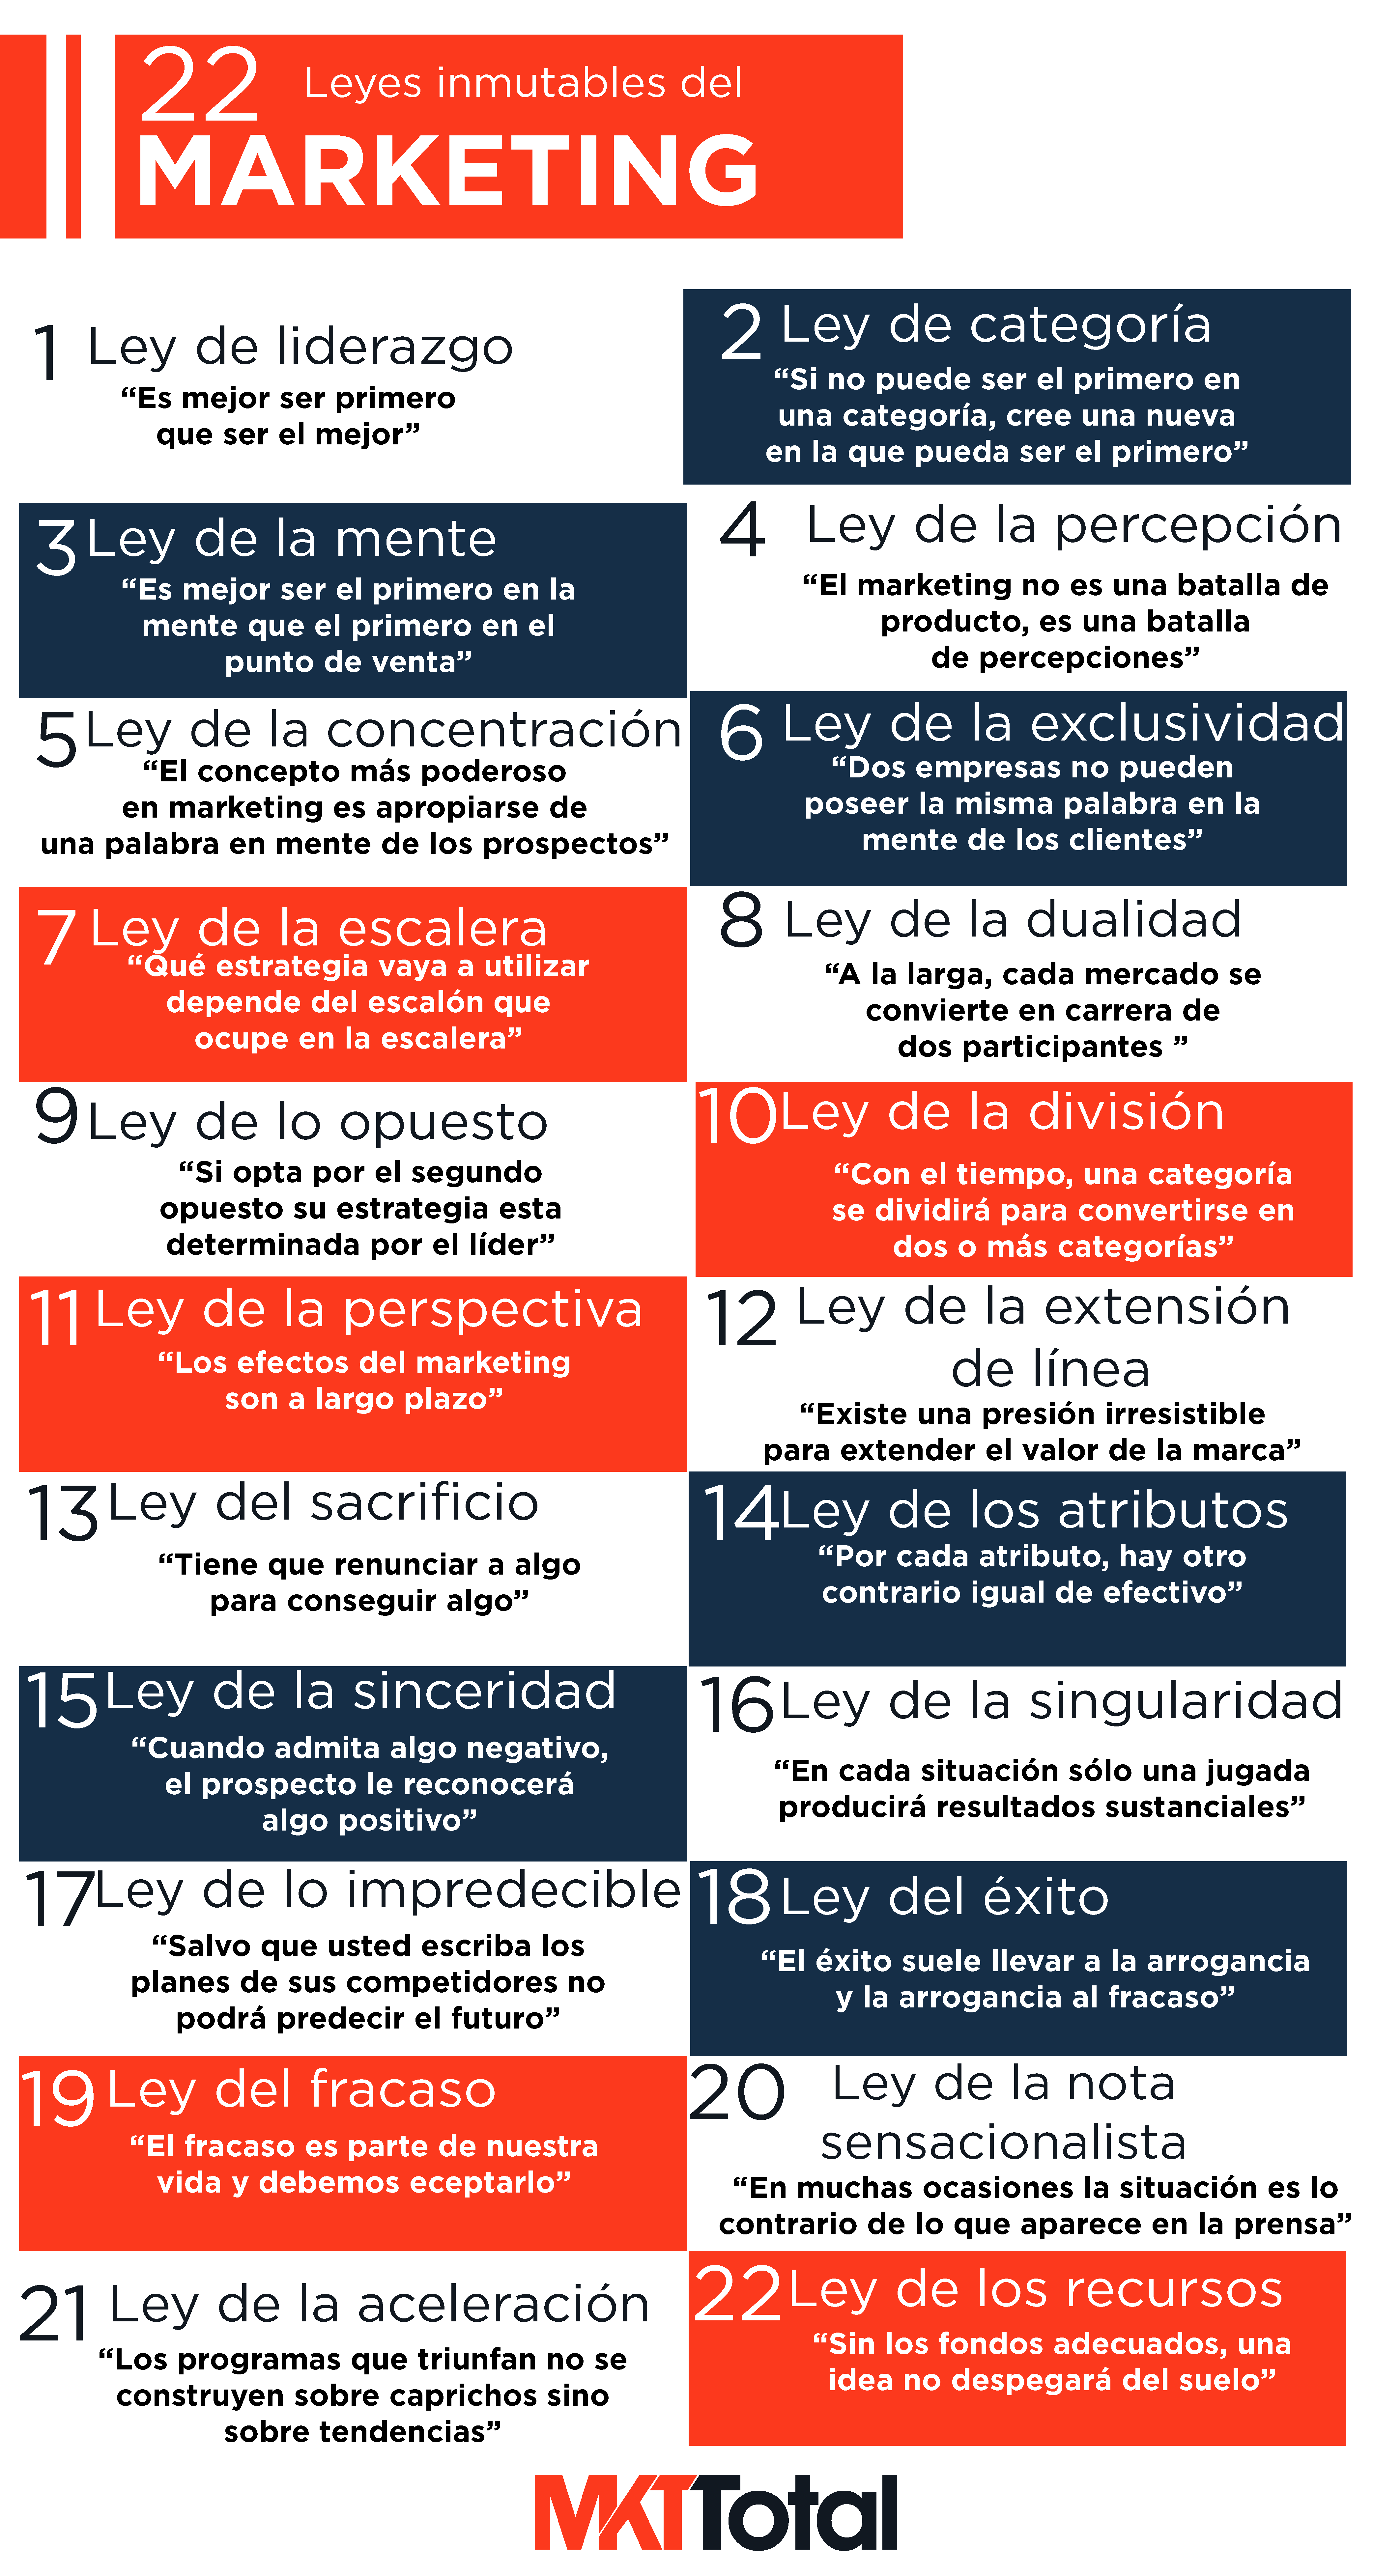 las 22 leyes inmutables del marketing pdf descargar